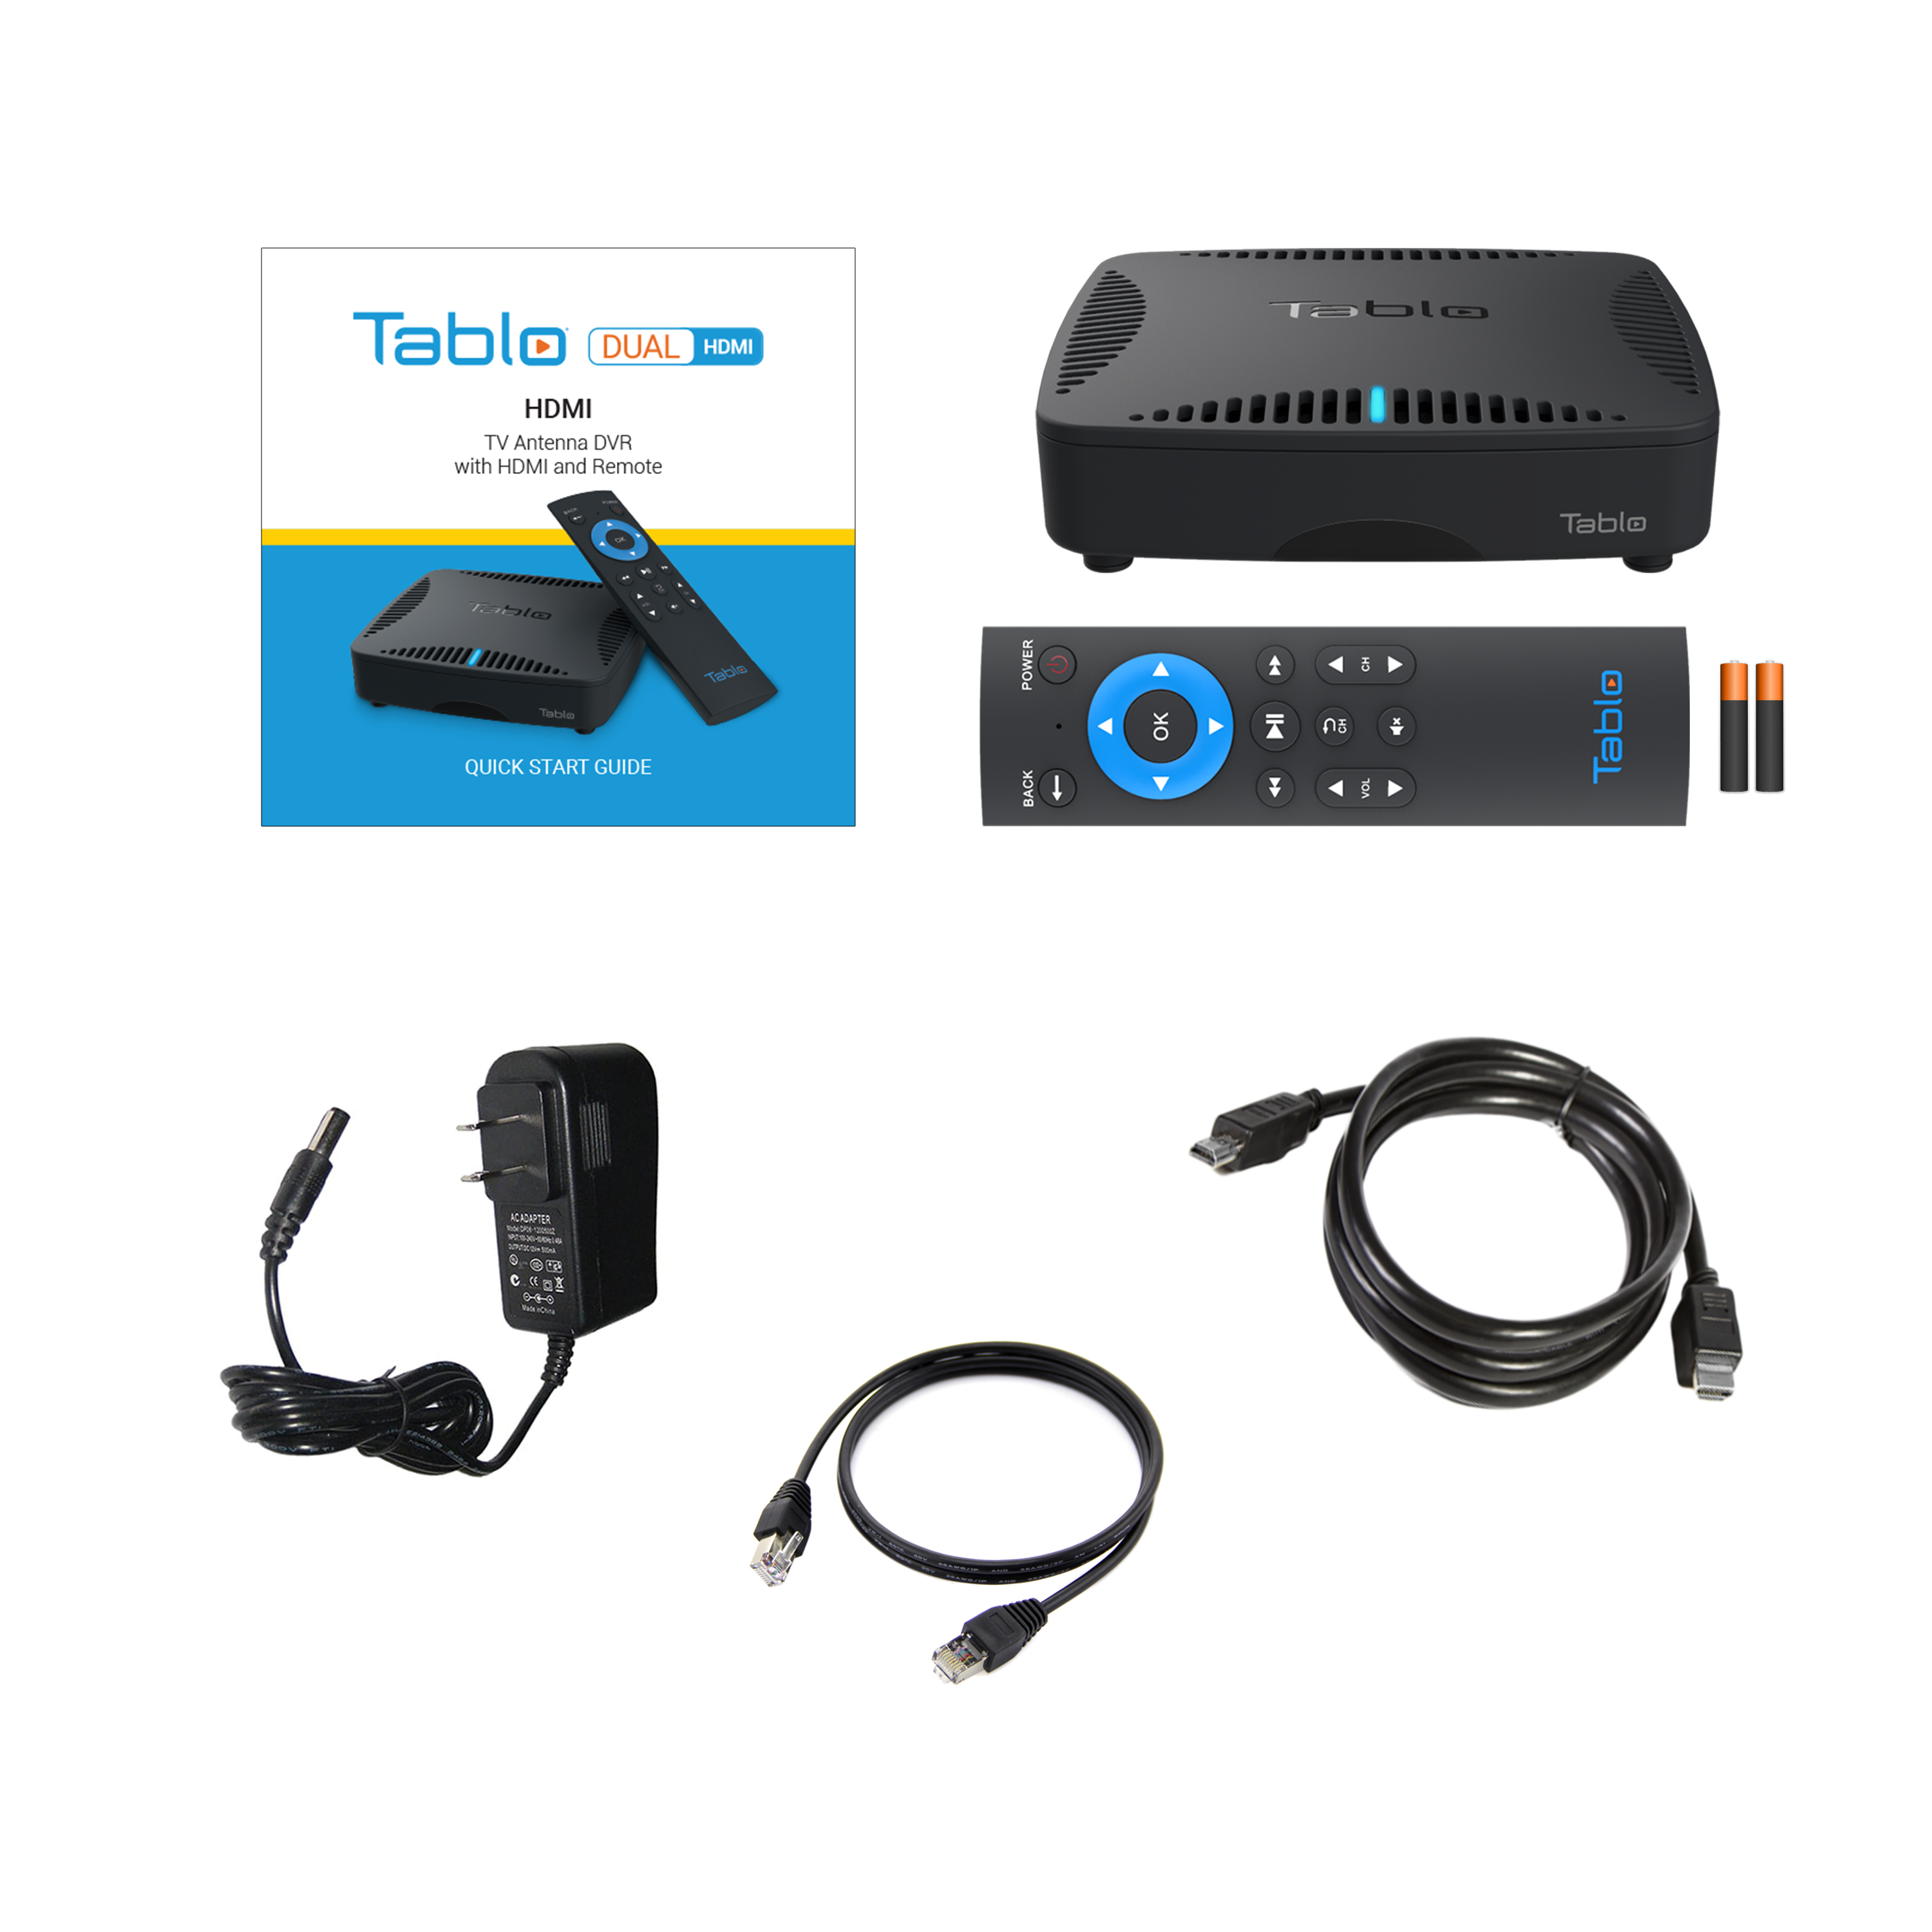 tablo_dual_hdmi_in_the_box.png